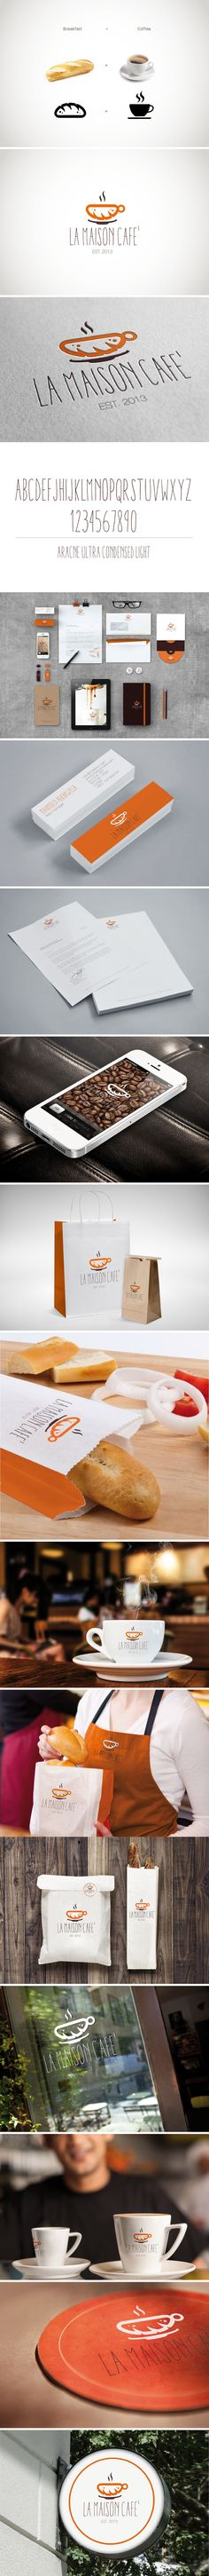 """La Maison Cafe' is a small neighborhood bistro serving coffee and breakfast. Drop by for a nice cup in the morning and taste the delicious sandwiches with fresh salad in the evening. The name """"La Maison Cafe'"""" means """" The House """", which refers to the cozy…"""